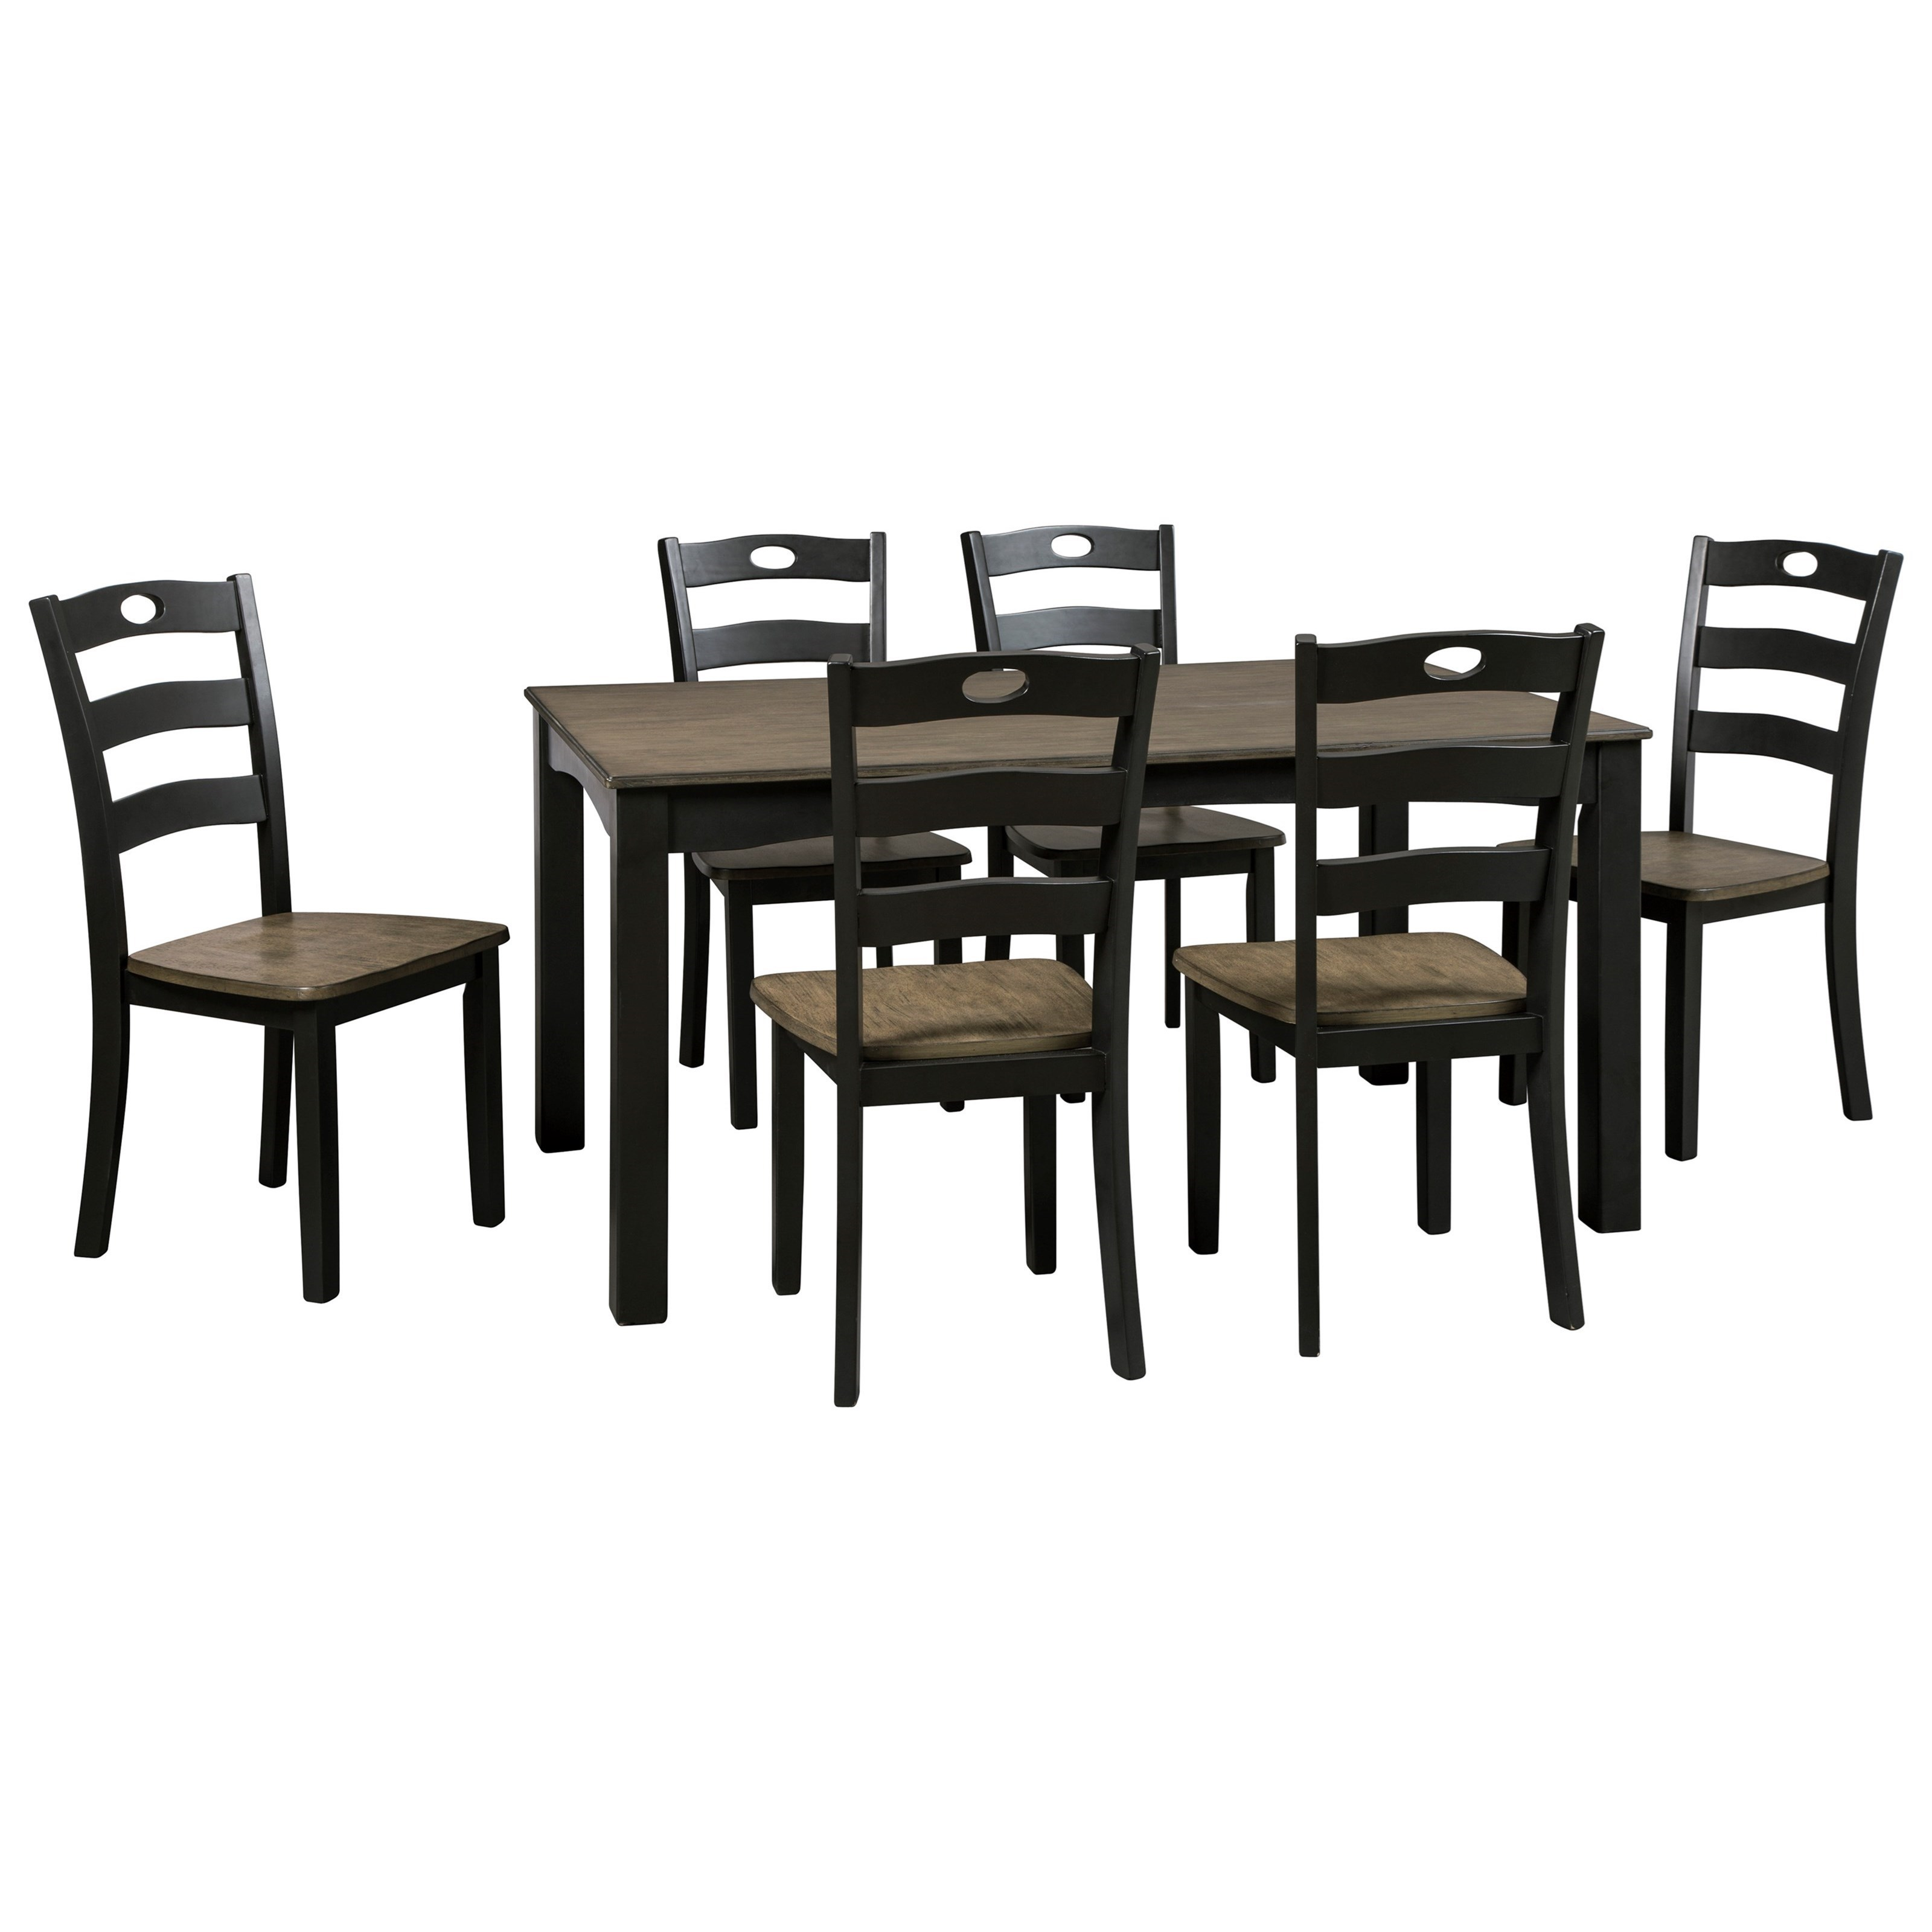 Signature Design by Ashley Frost7-Piece Dining Room Table Set ...  sc 1 st  Becker Furniture World : dining room table and chairs - lorbestier.org